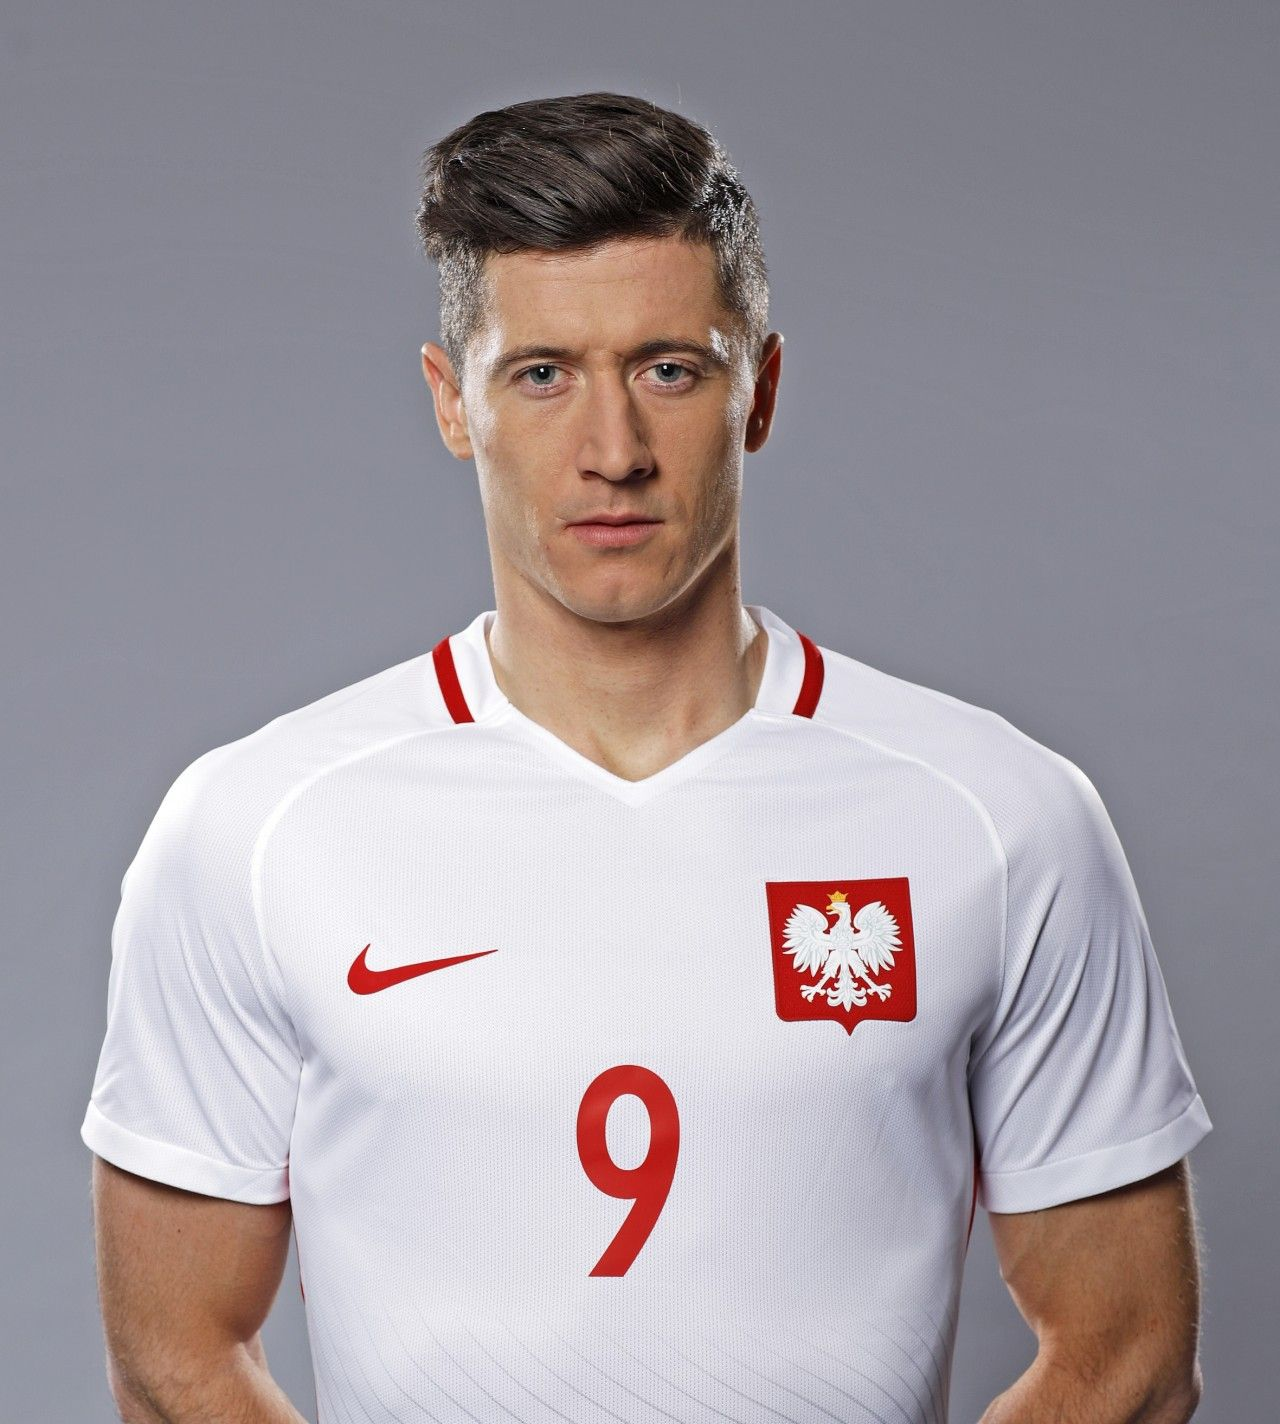 Robert Lewandowski #poland #polonia #polska | Sports ...